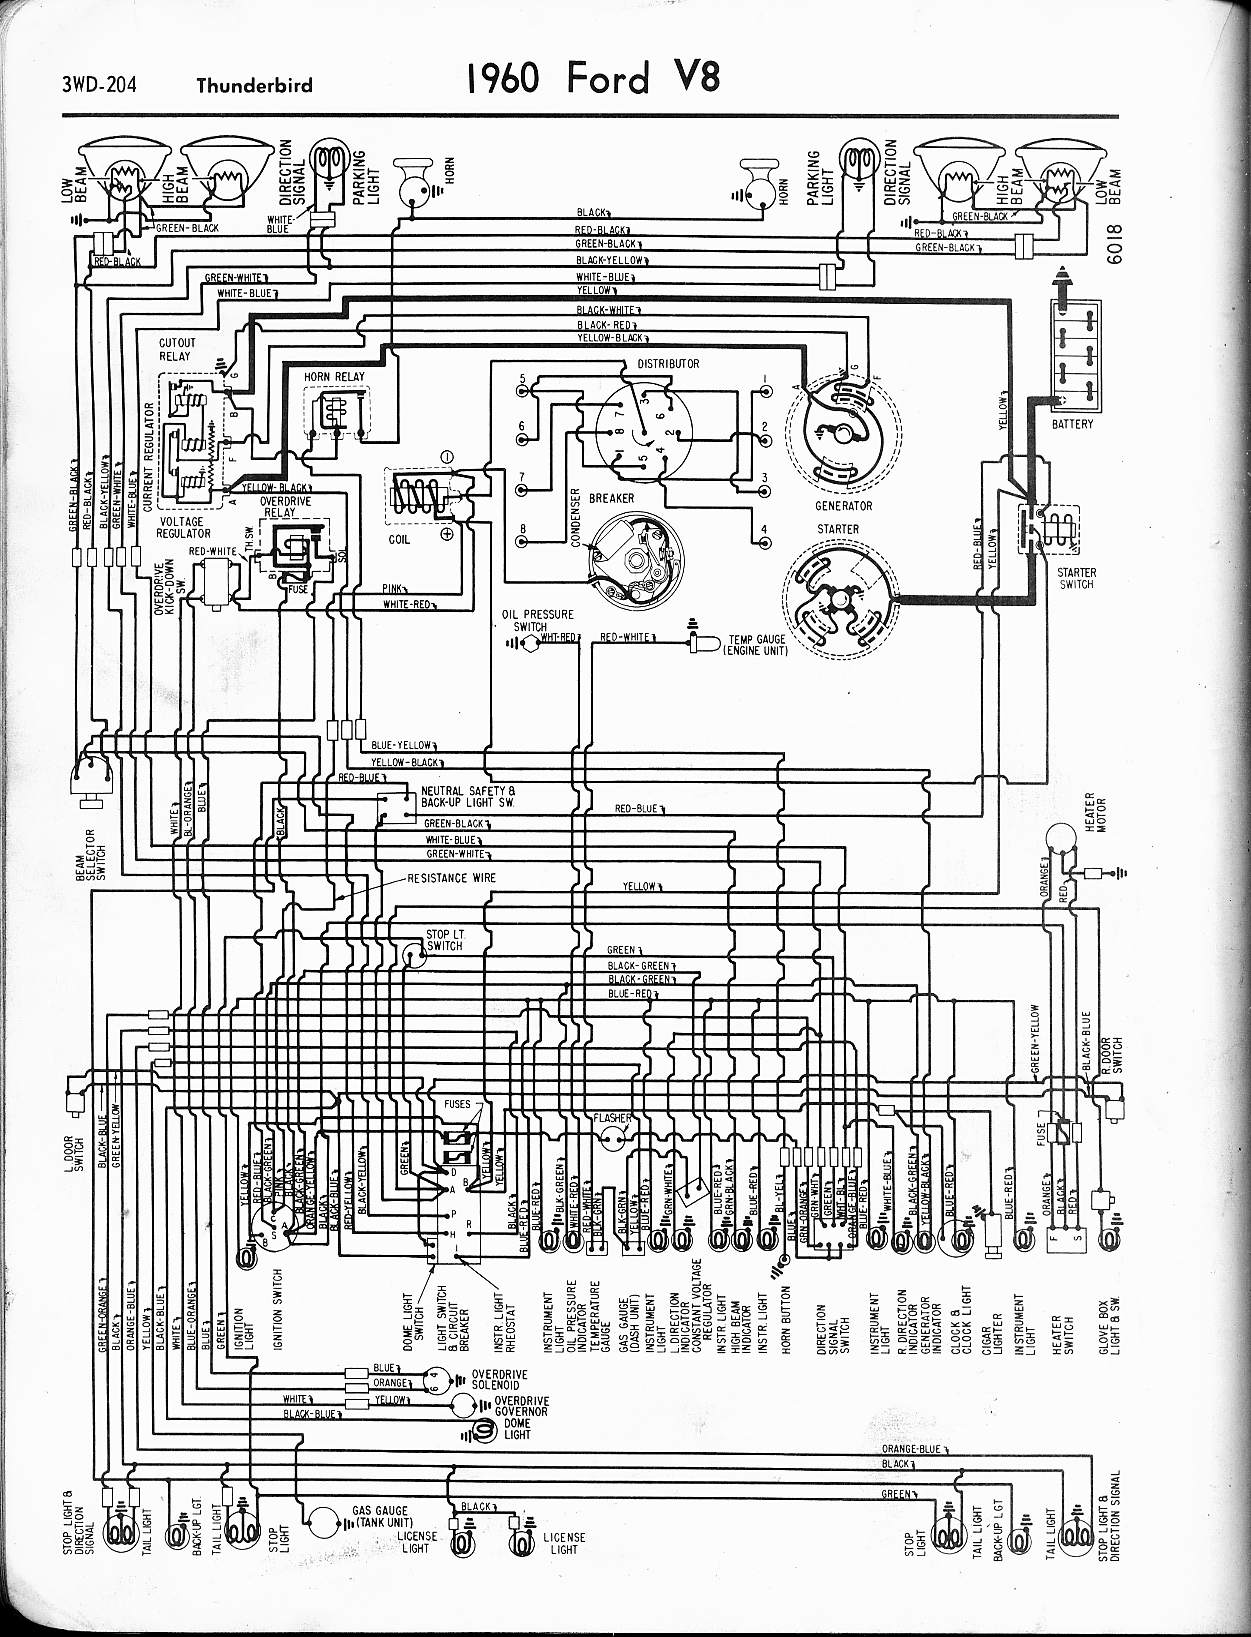 1965 ford t bird wiring wiring data diagram rh 8 meditativ wandern de